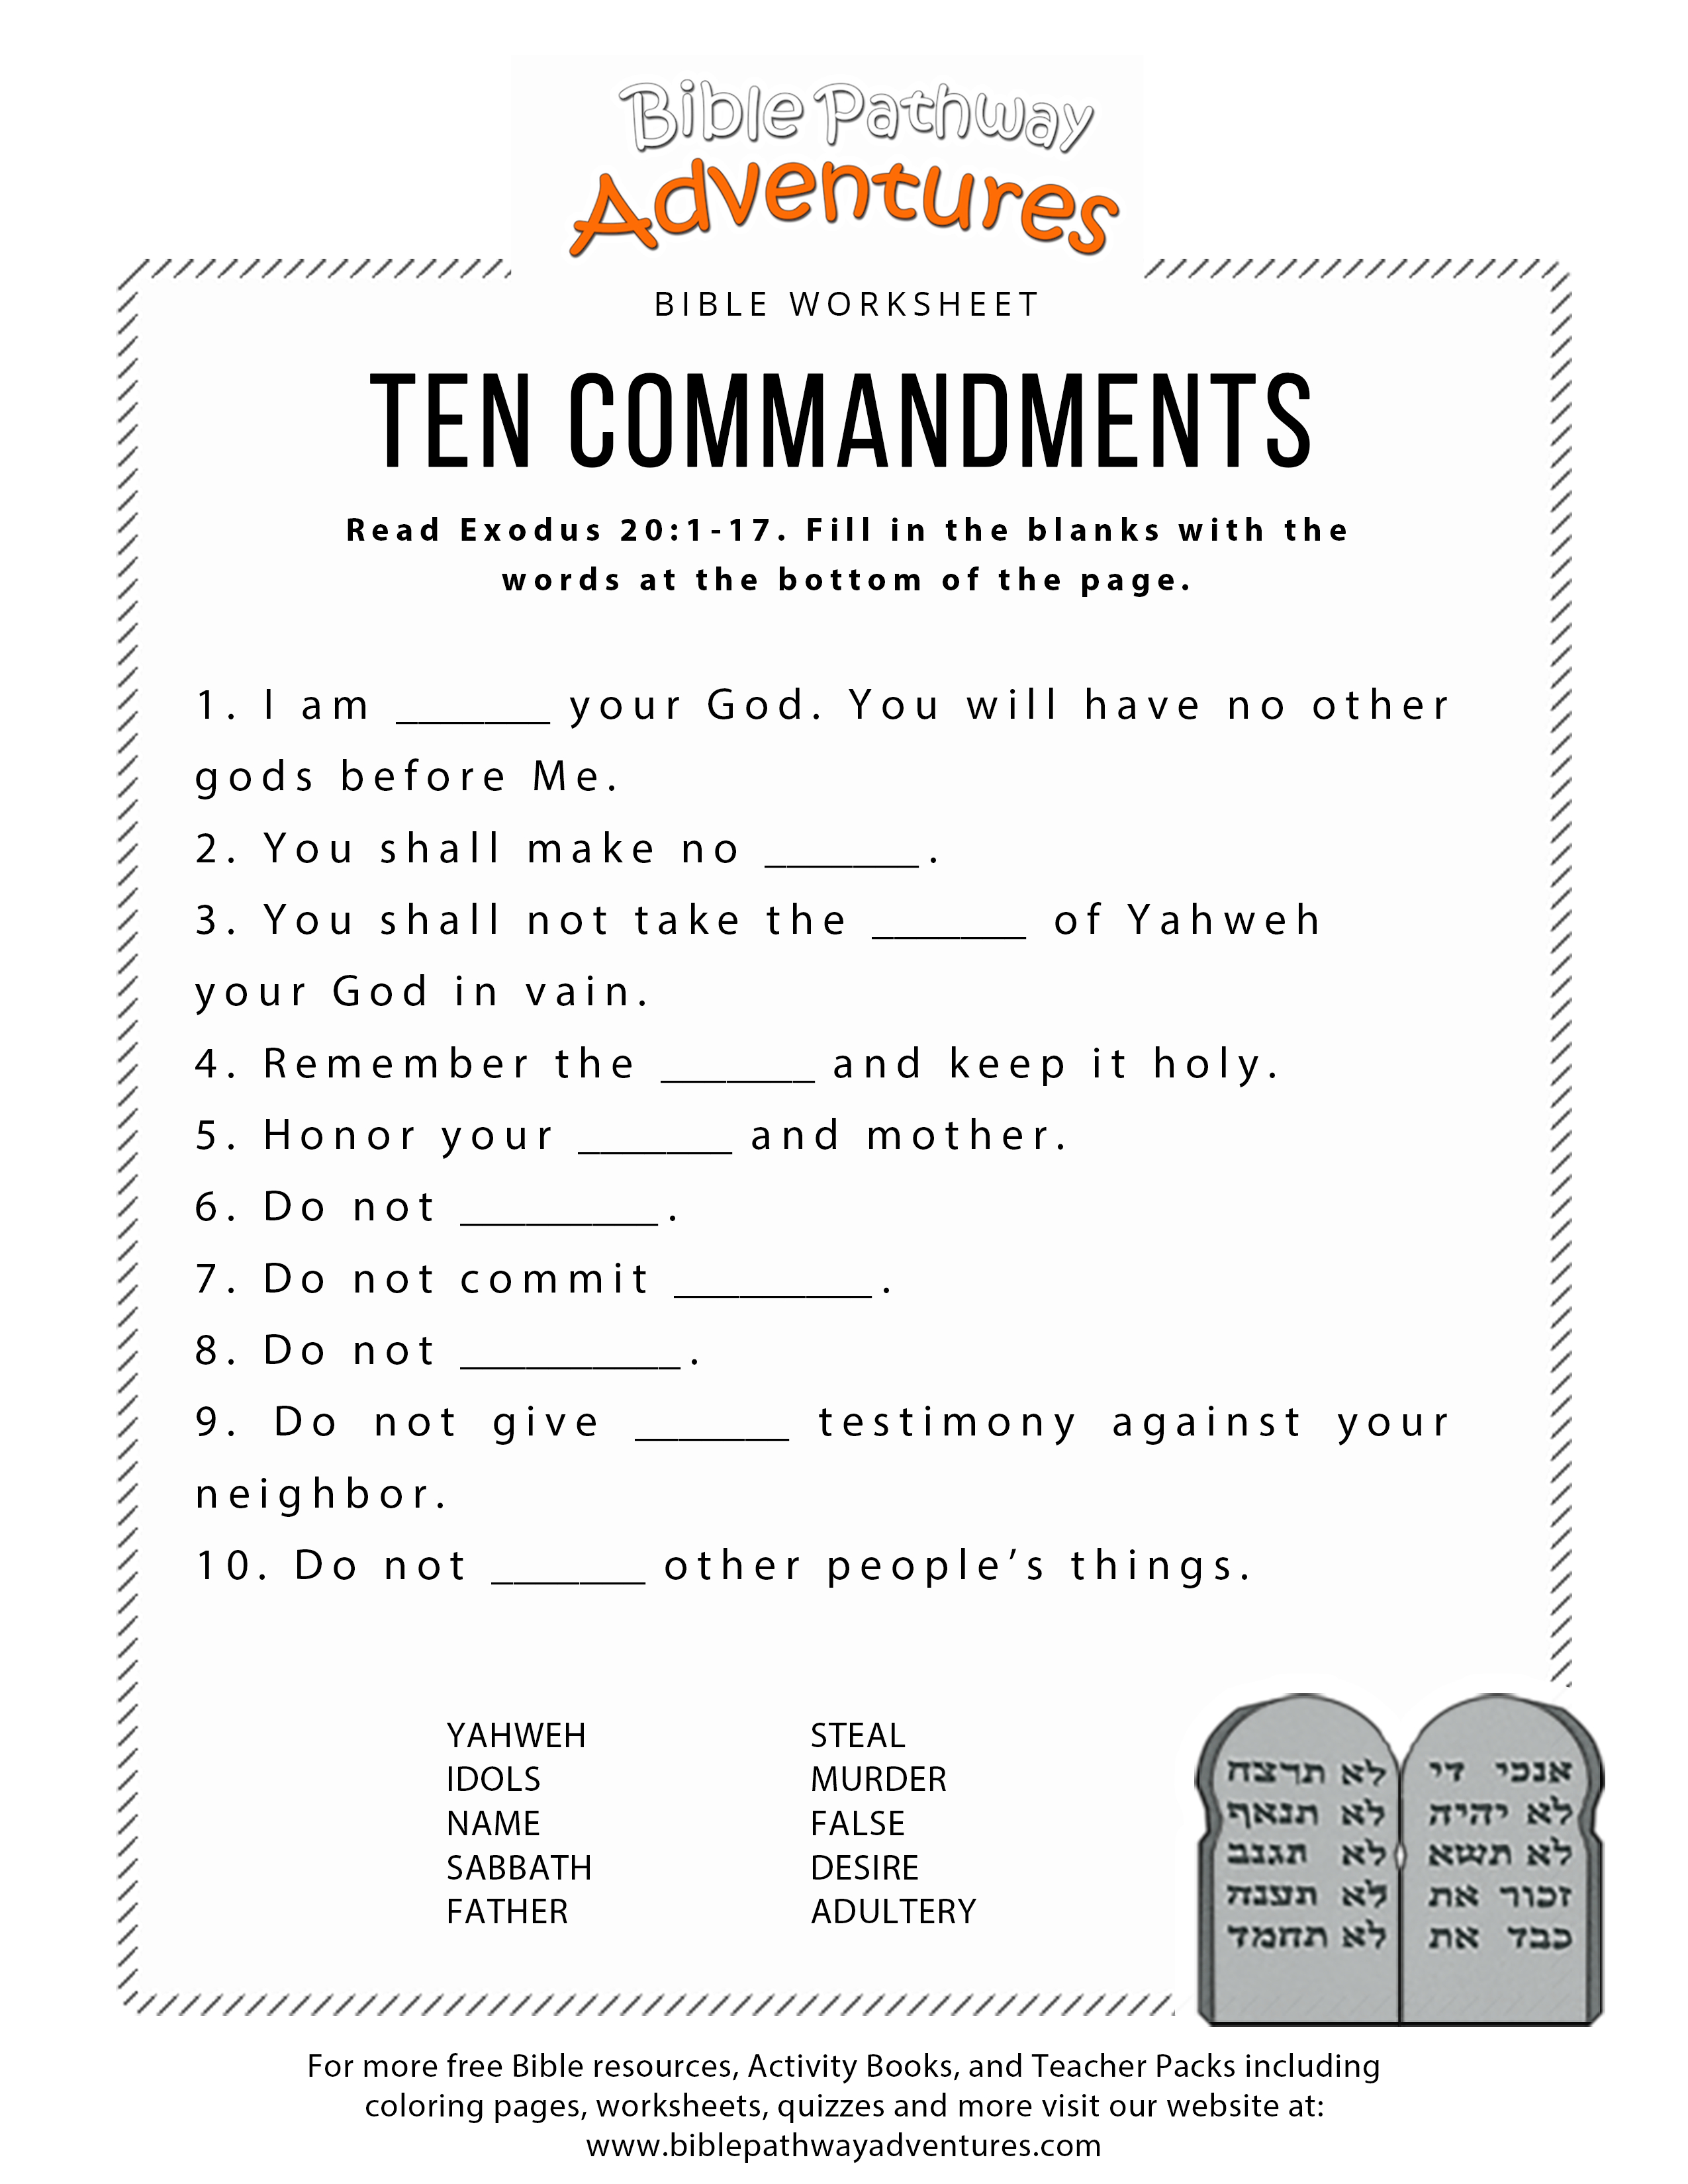 Ten Commandments Worksheet For Kids | Hebrew School | Bible - Bible Lessons For Adults Free Printable